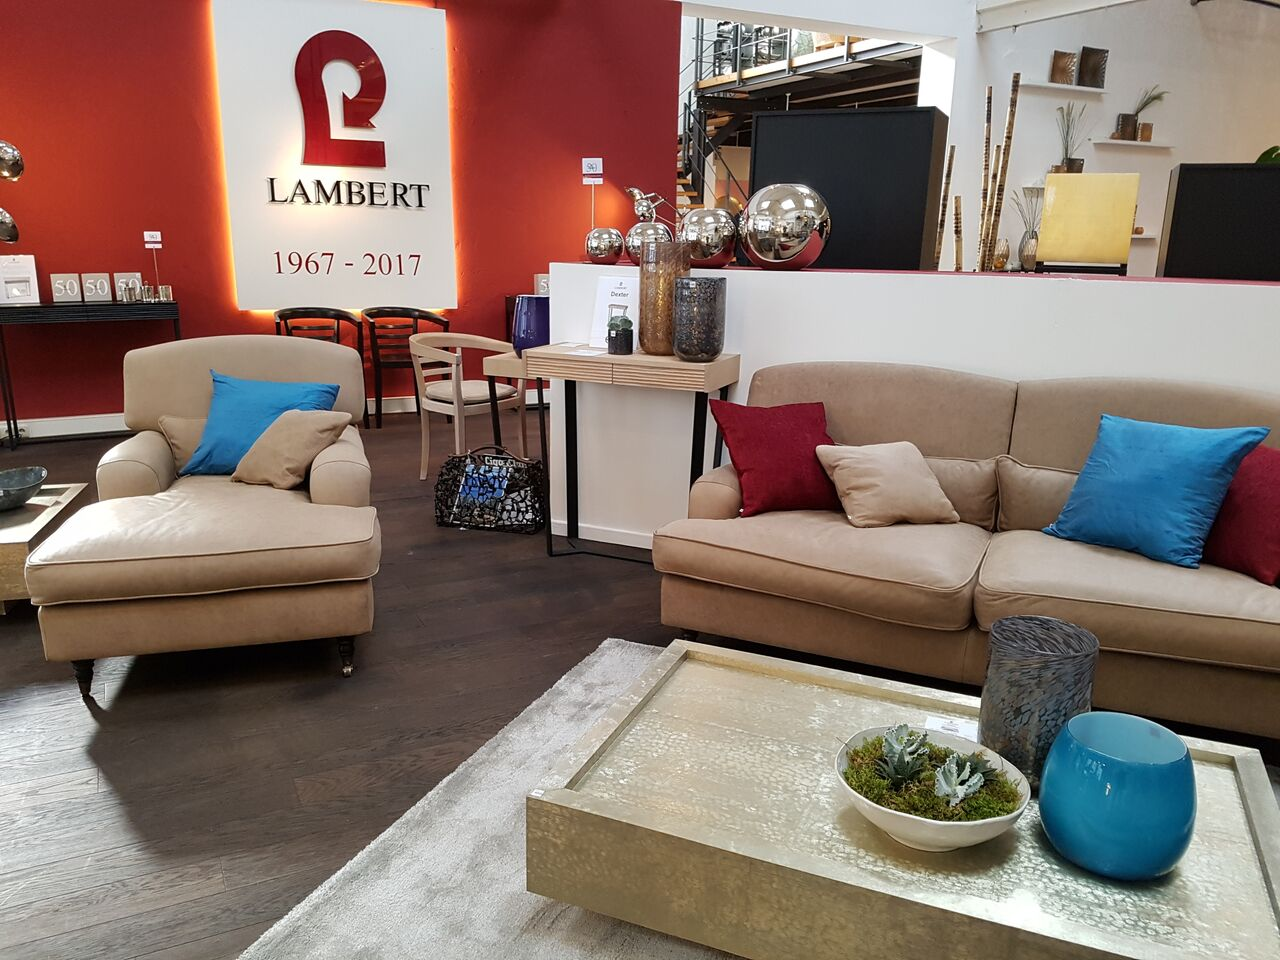 lambert 50 jahre continental lambert m bel shop exklusives wohndesign. Black Bedroom Furniture Sets. Home Design Ideas